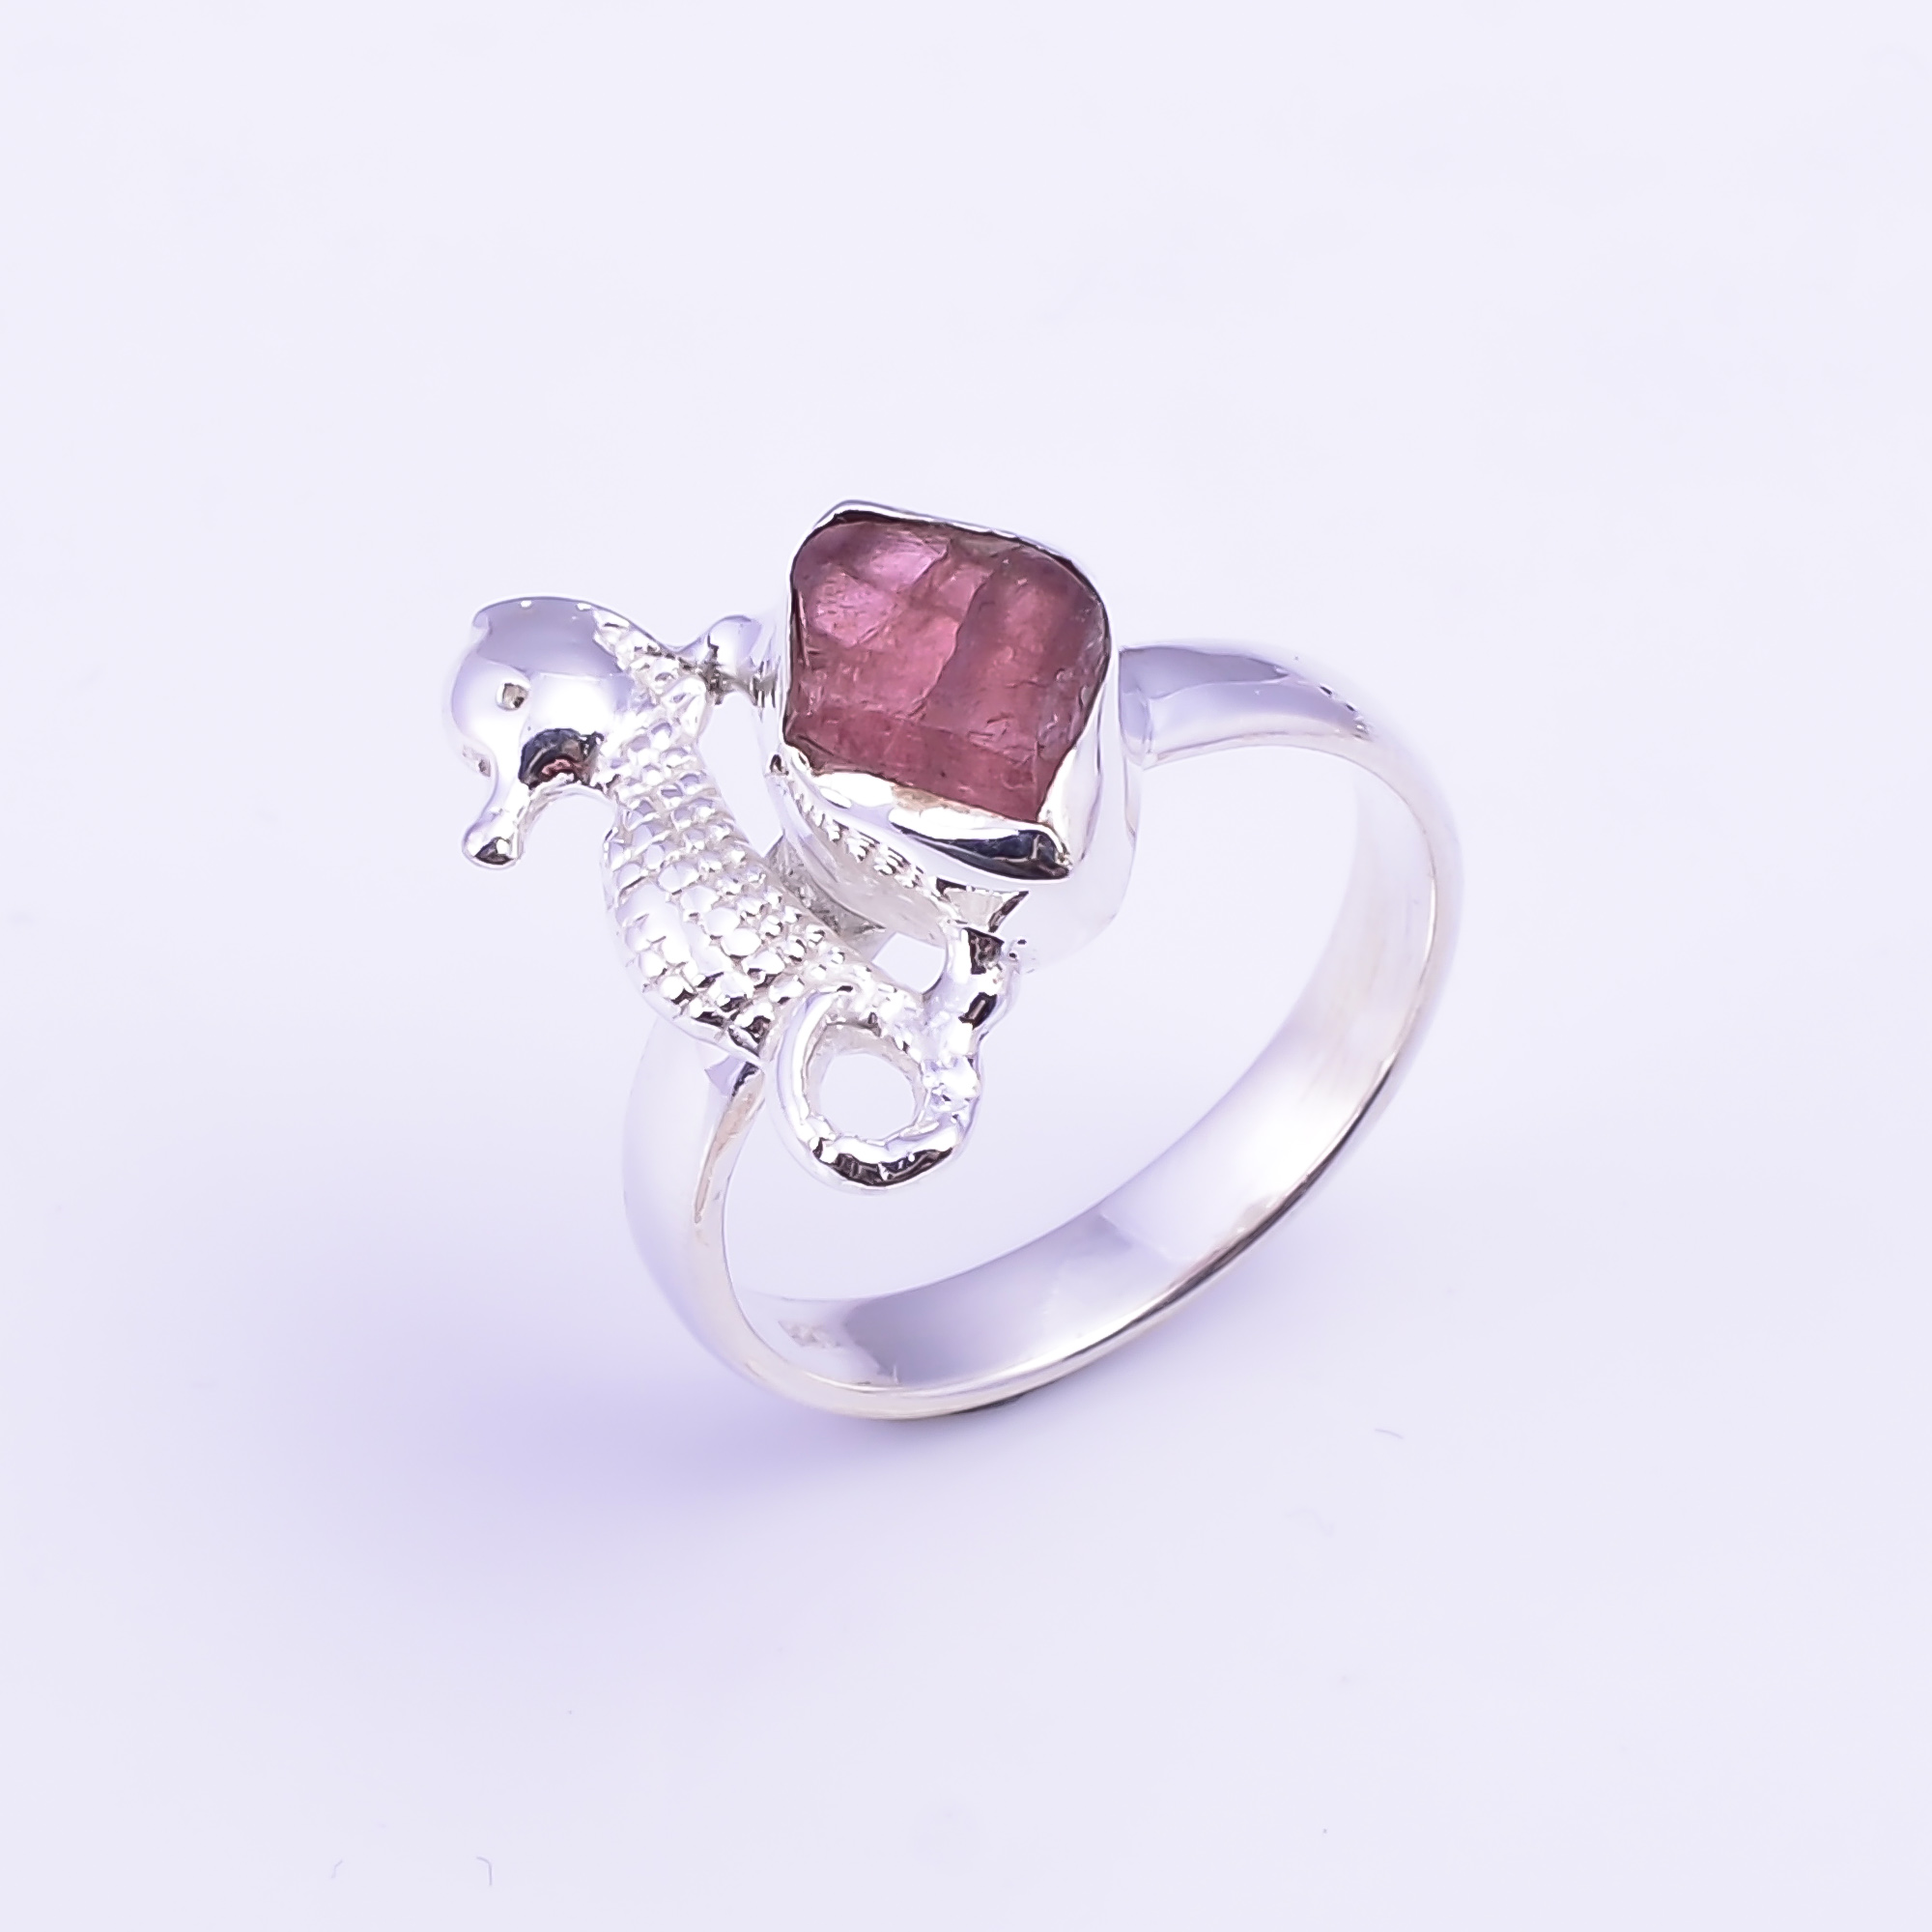 Raw Pink Tourmaline Gemstone 925 Sterling Silver Ring Size US 8